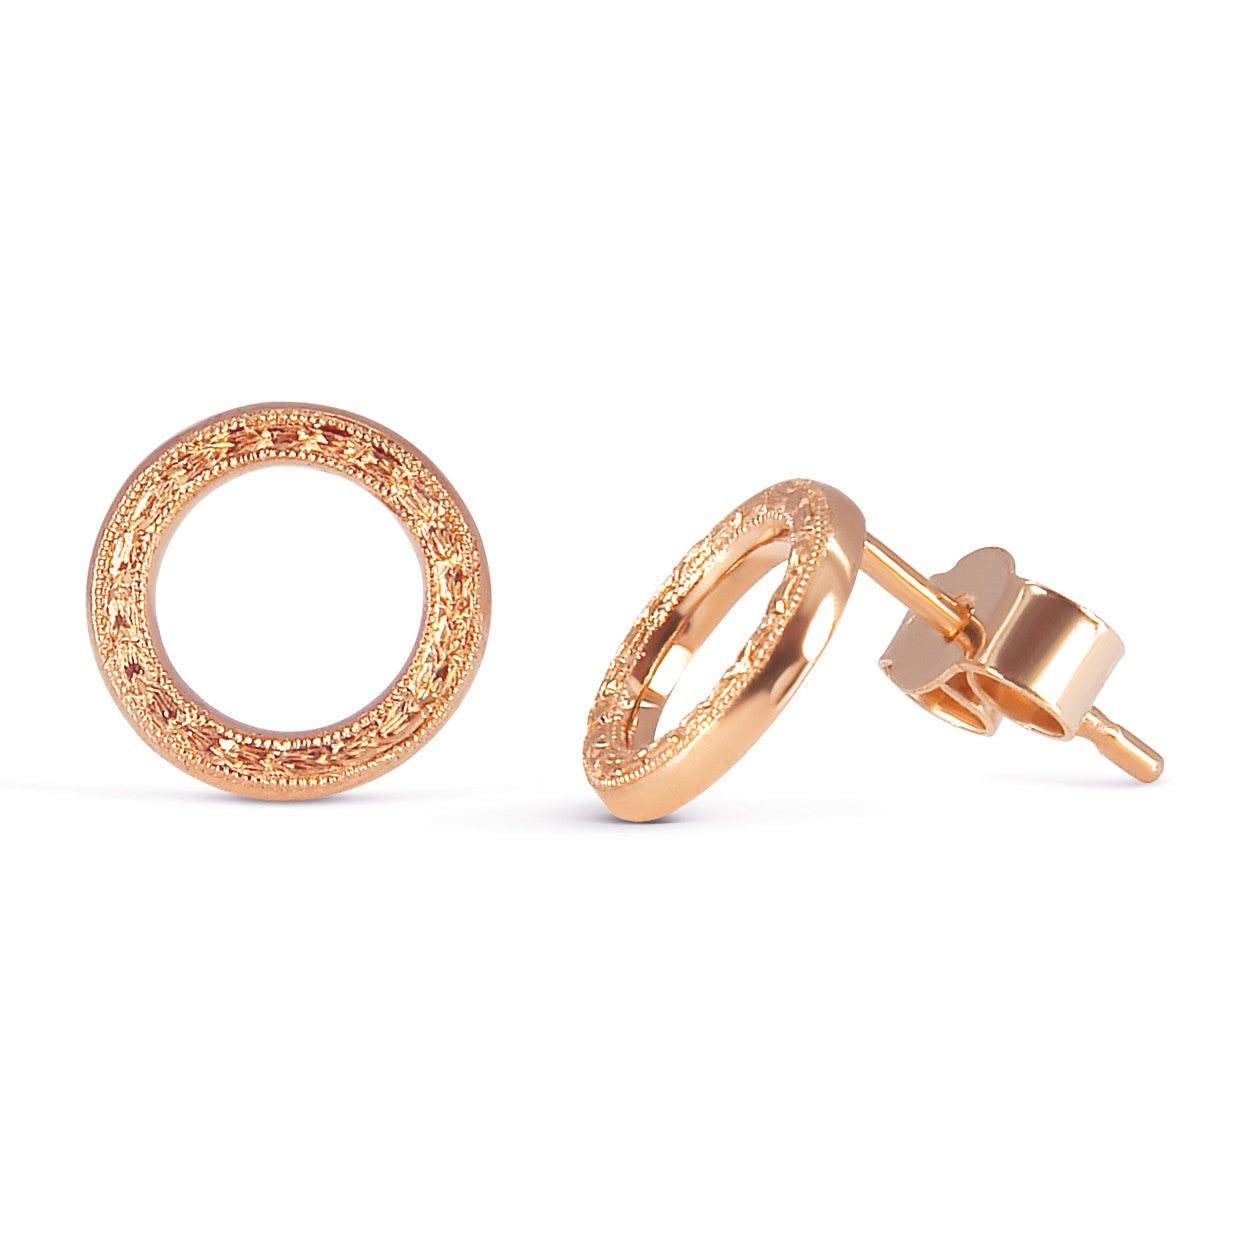 Heart Engraved Ethical Loop Earrings. 18ct Fairmined Ecological Gold